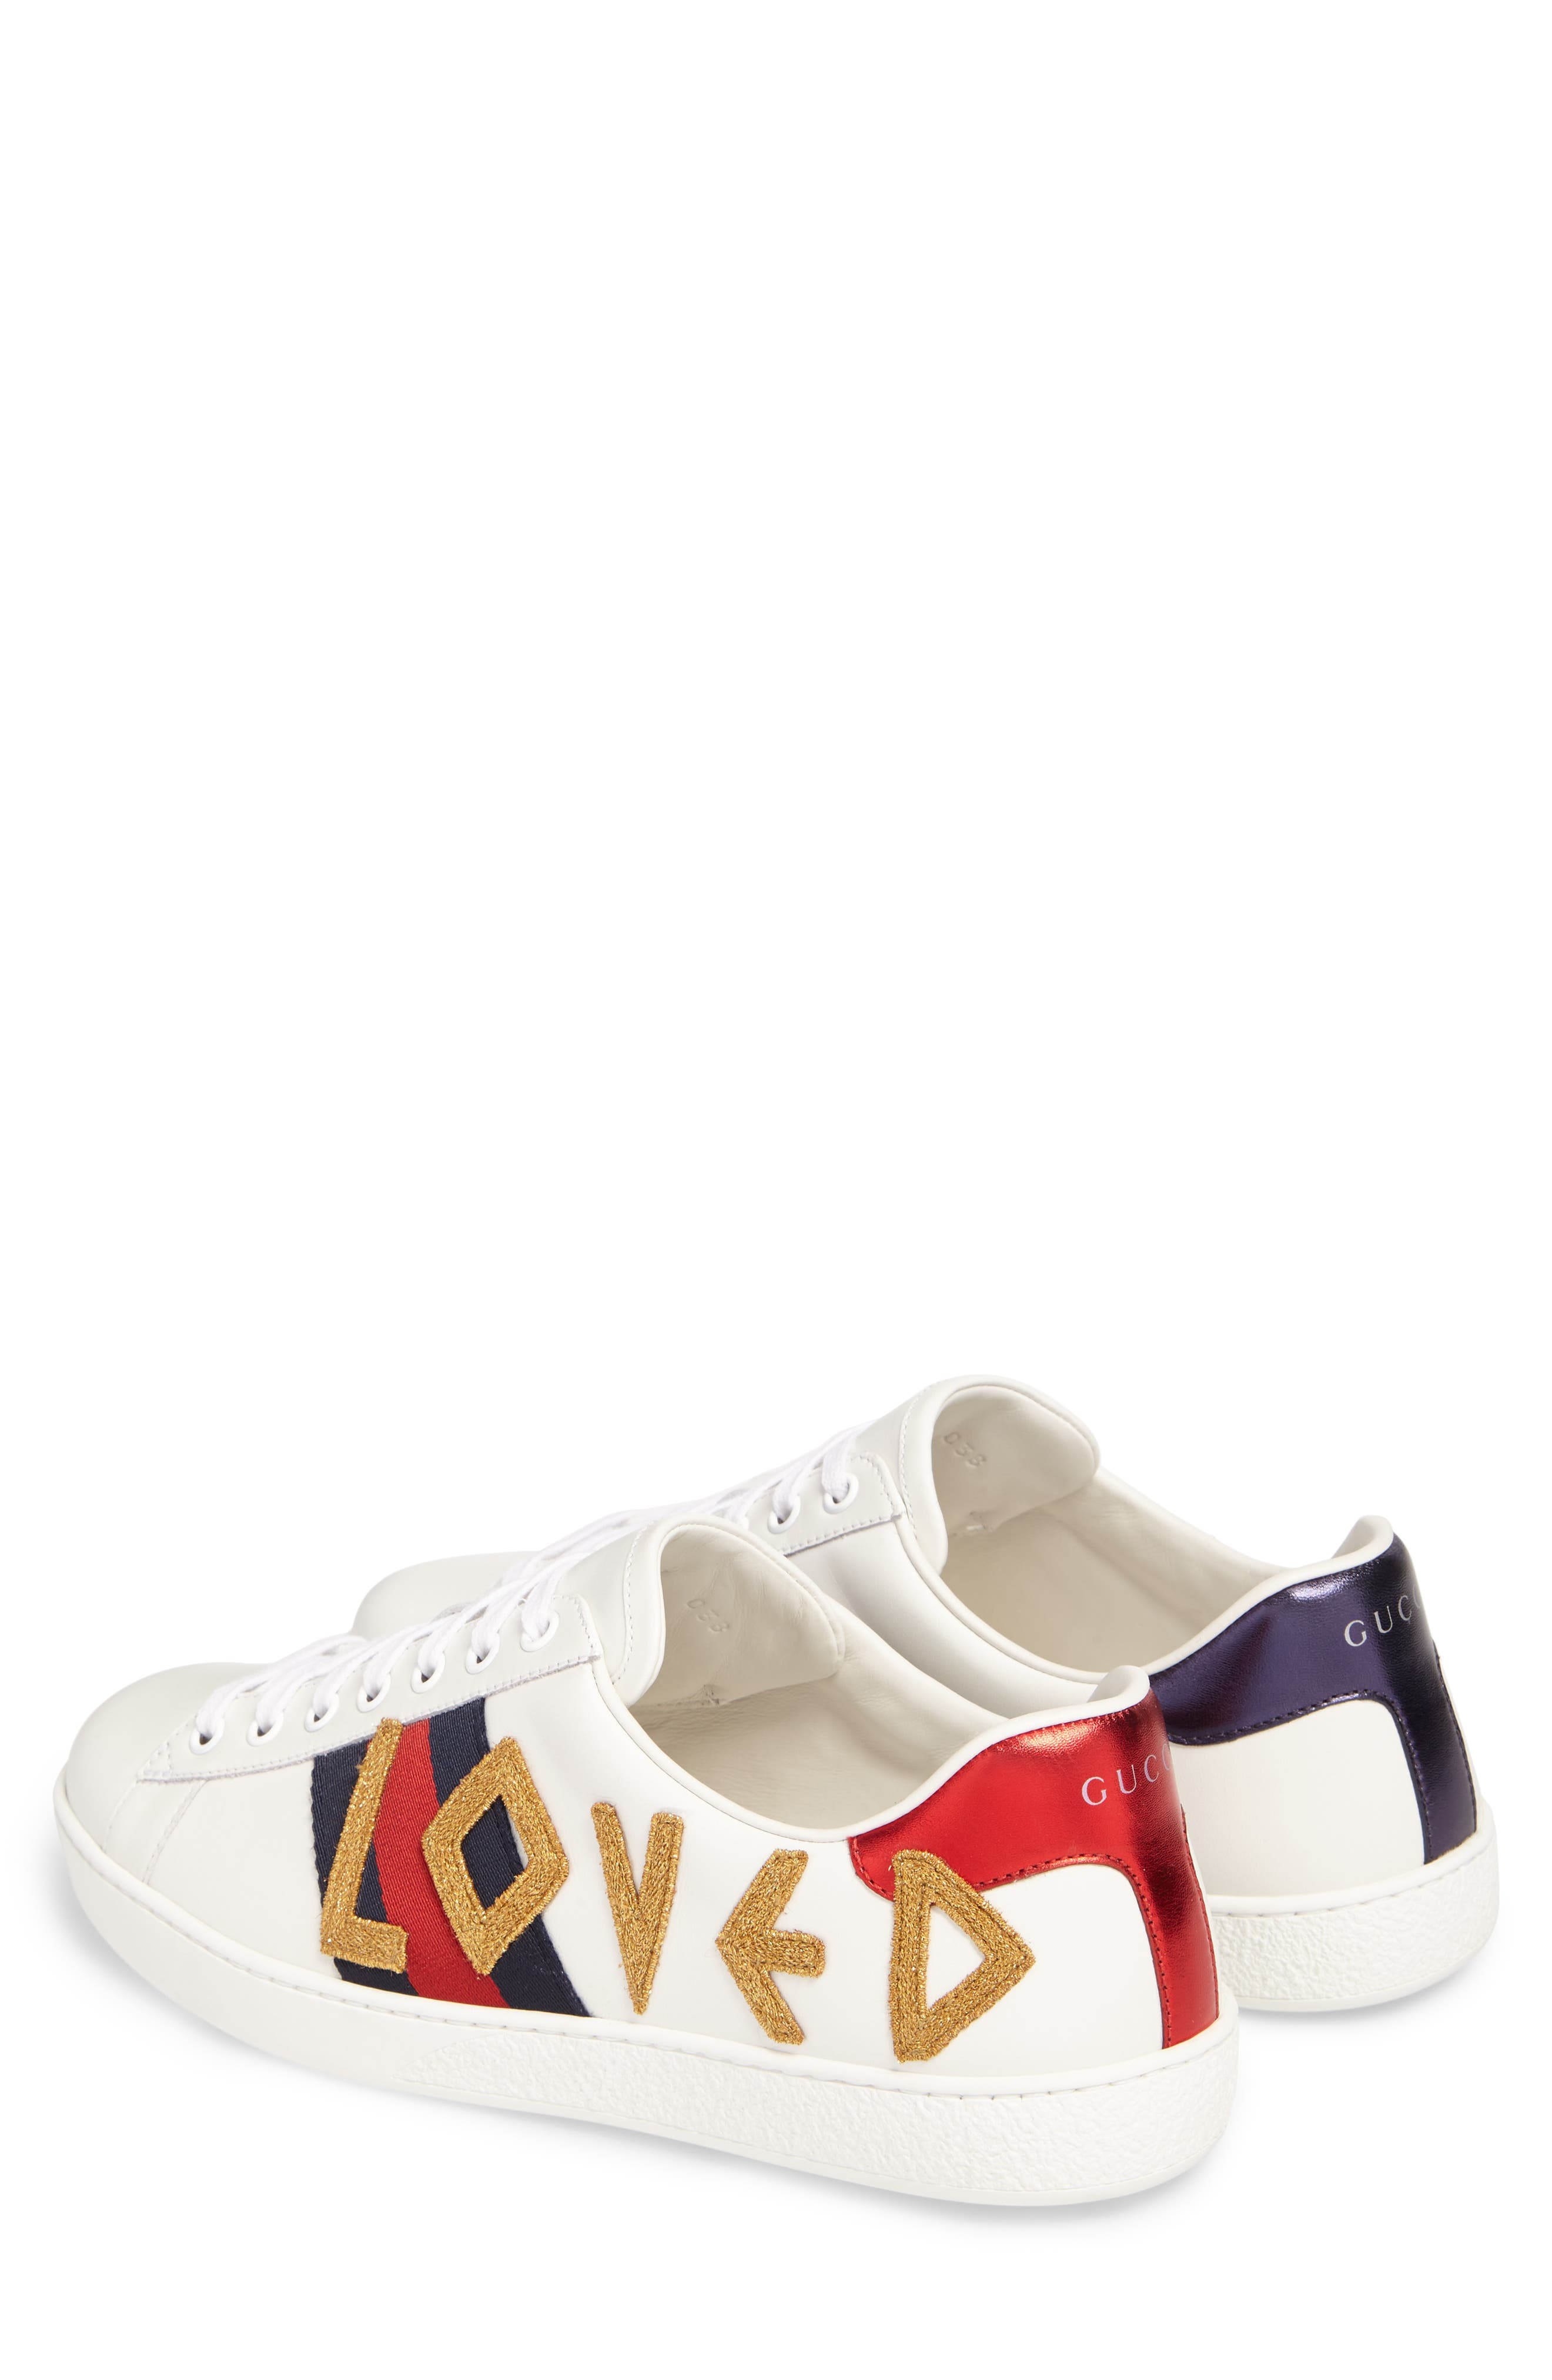 Alternate Image 2  - Gucci New Ace Loved Sneaker (Men)